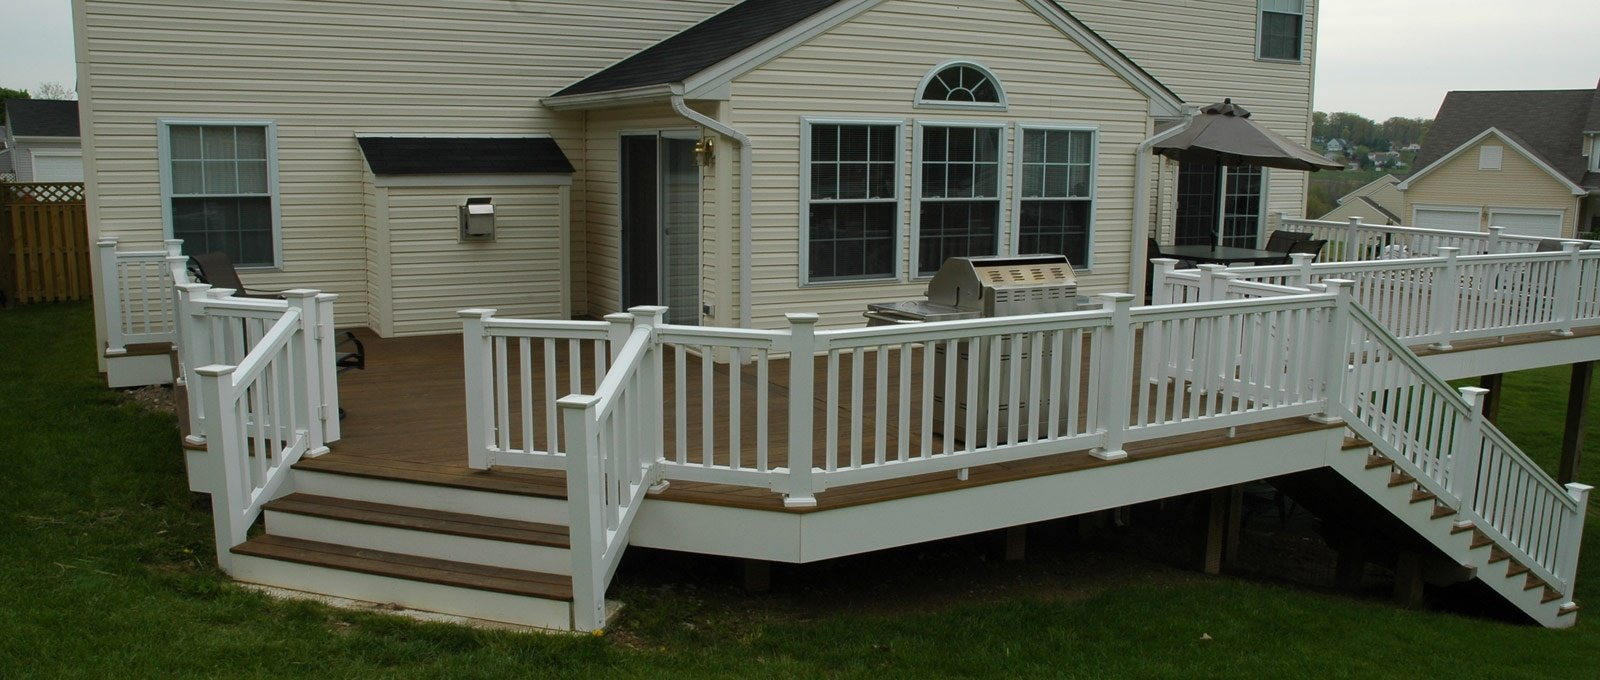 Ready to Start Your Deck Project with Brothers? ~ Request A Consultation